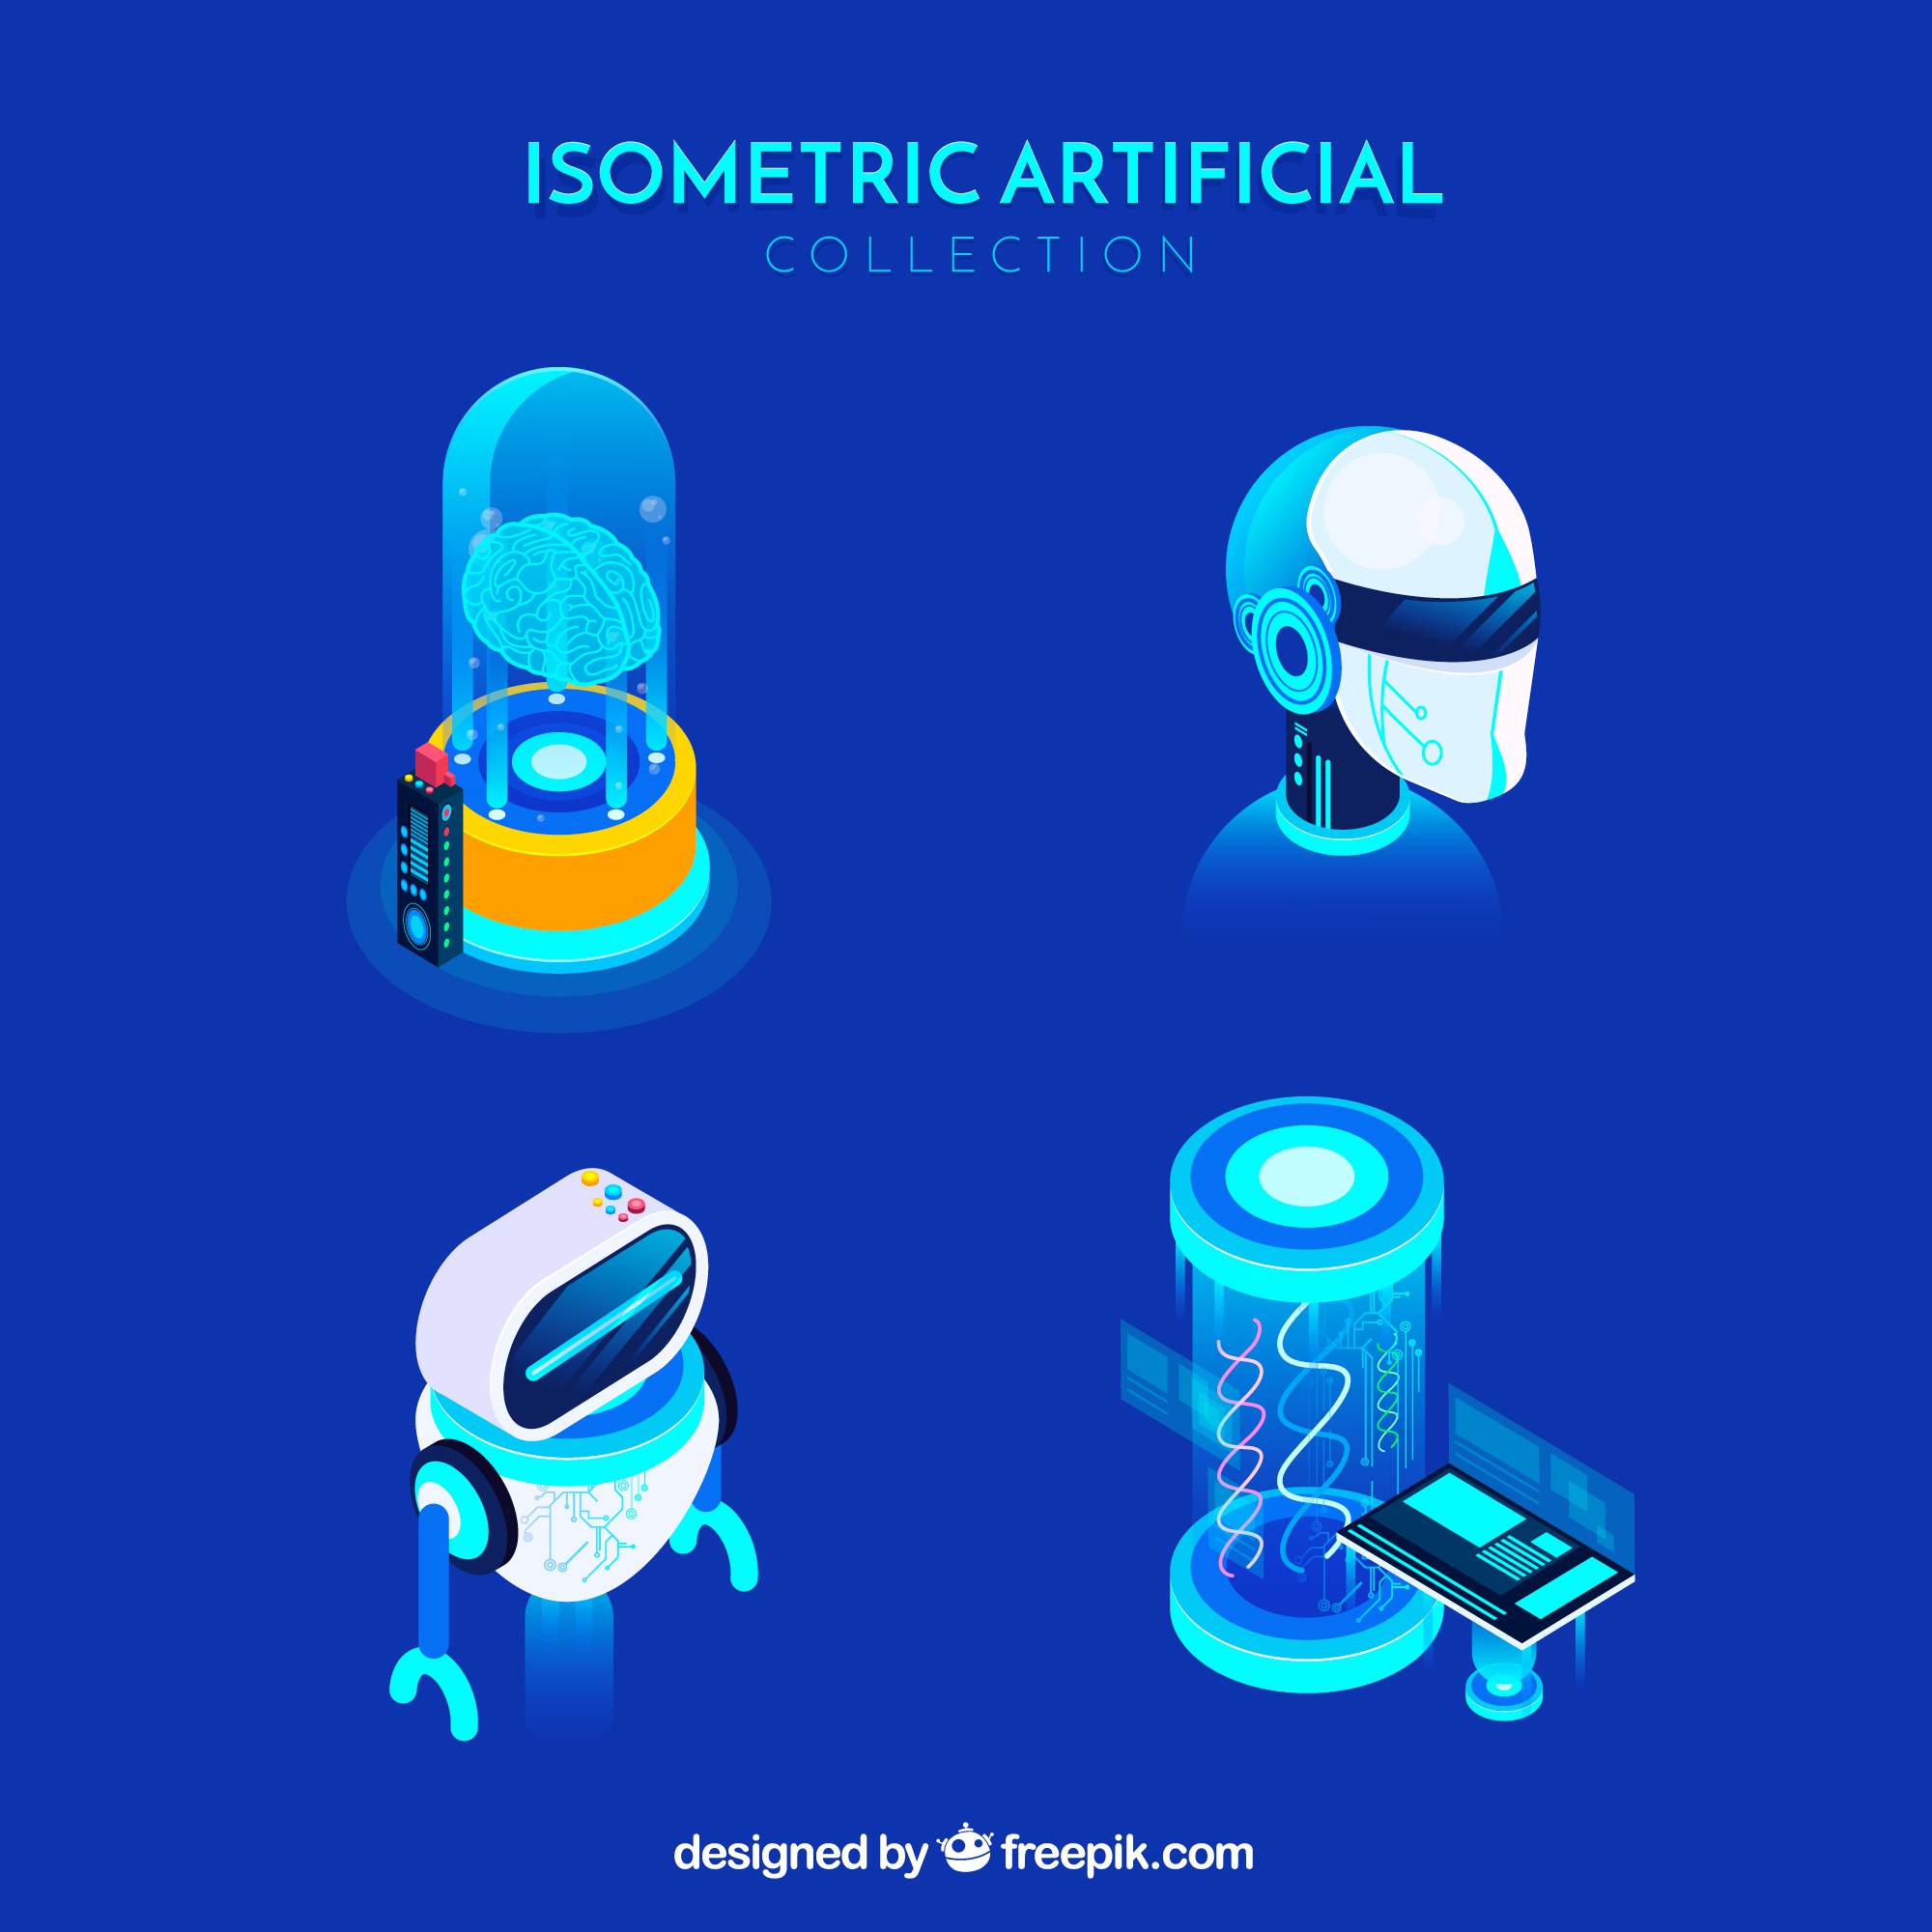 Artificial intelligence elements collection in isometric style